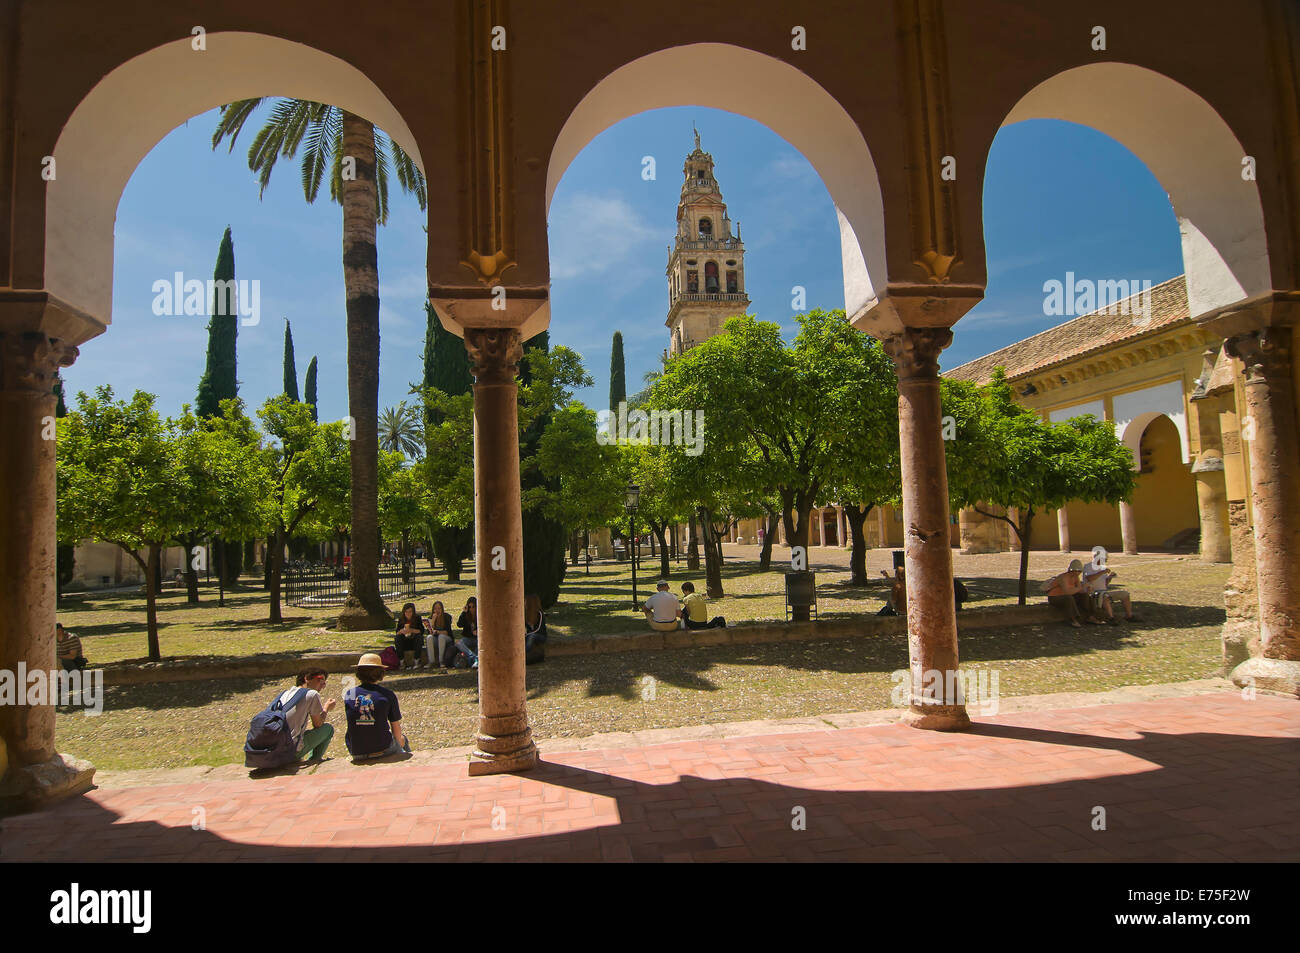 Great Mosque and Patio de los Naranjos, Cordoba, Region of Andalusia, Spain, Europe Stock Photo